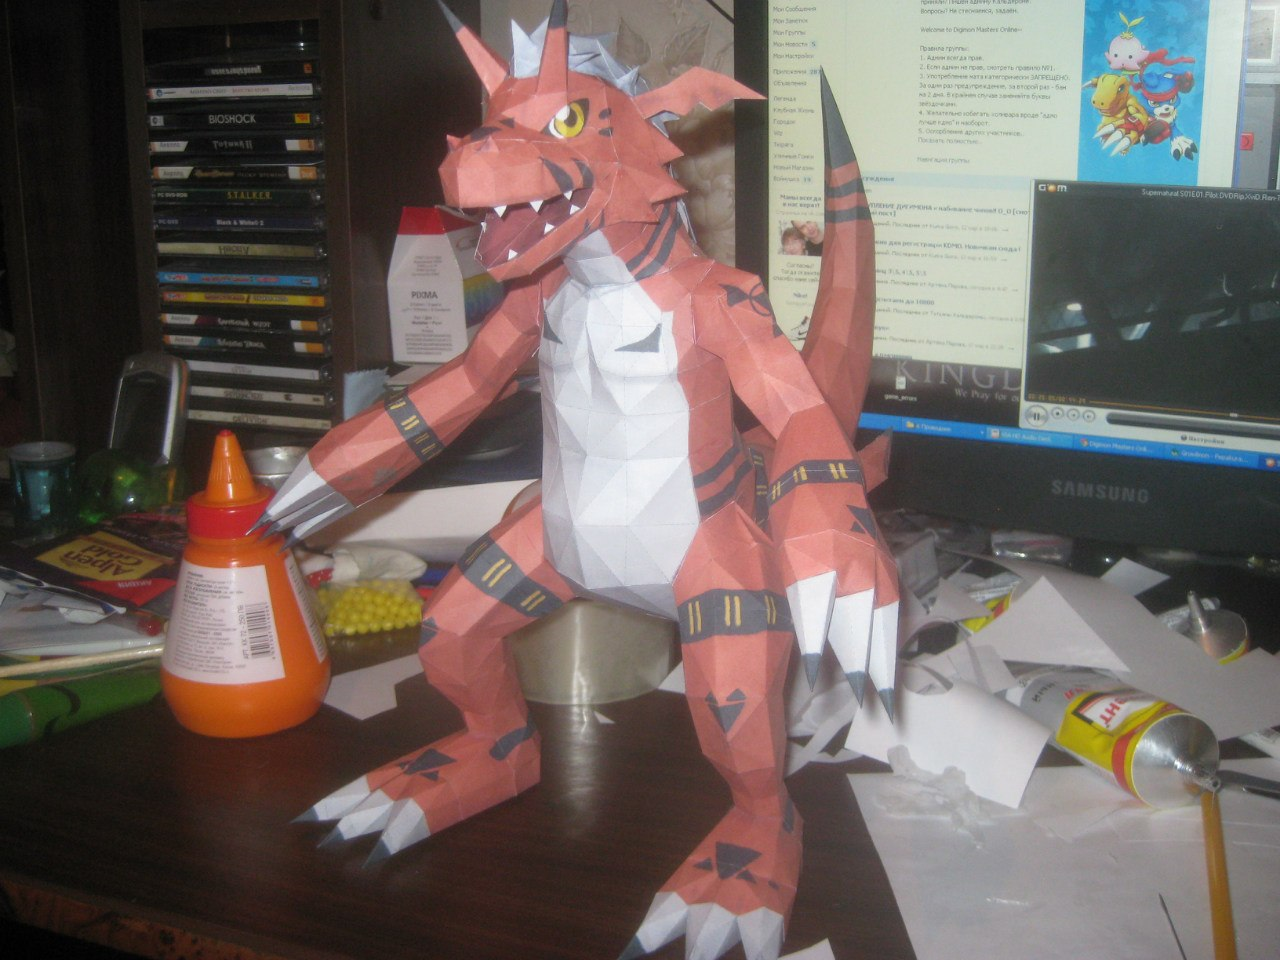 Growlmon papercraft by Zimberdum